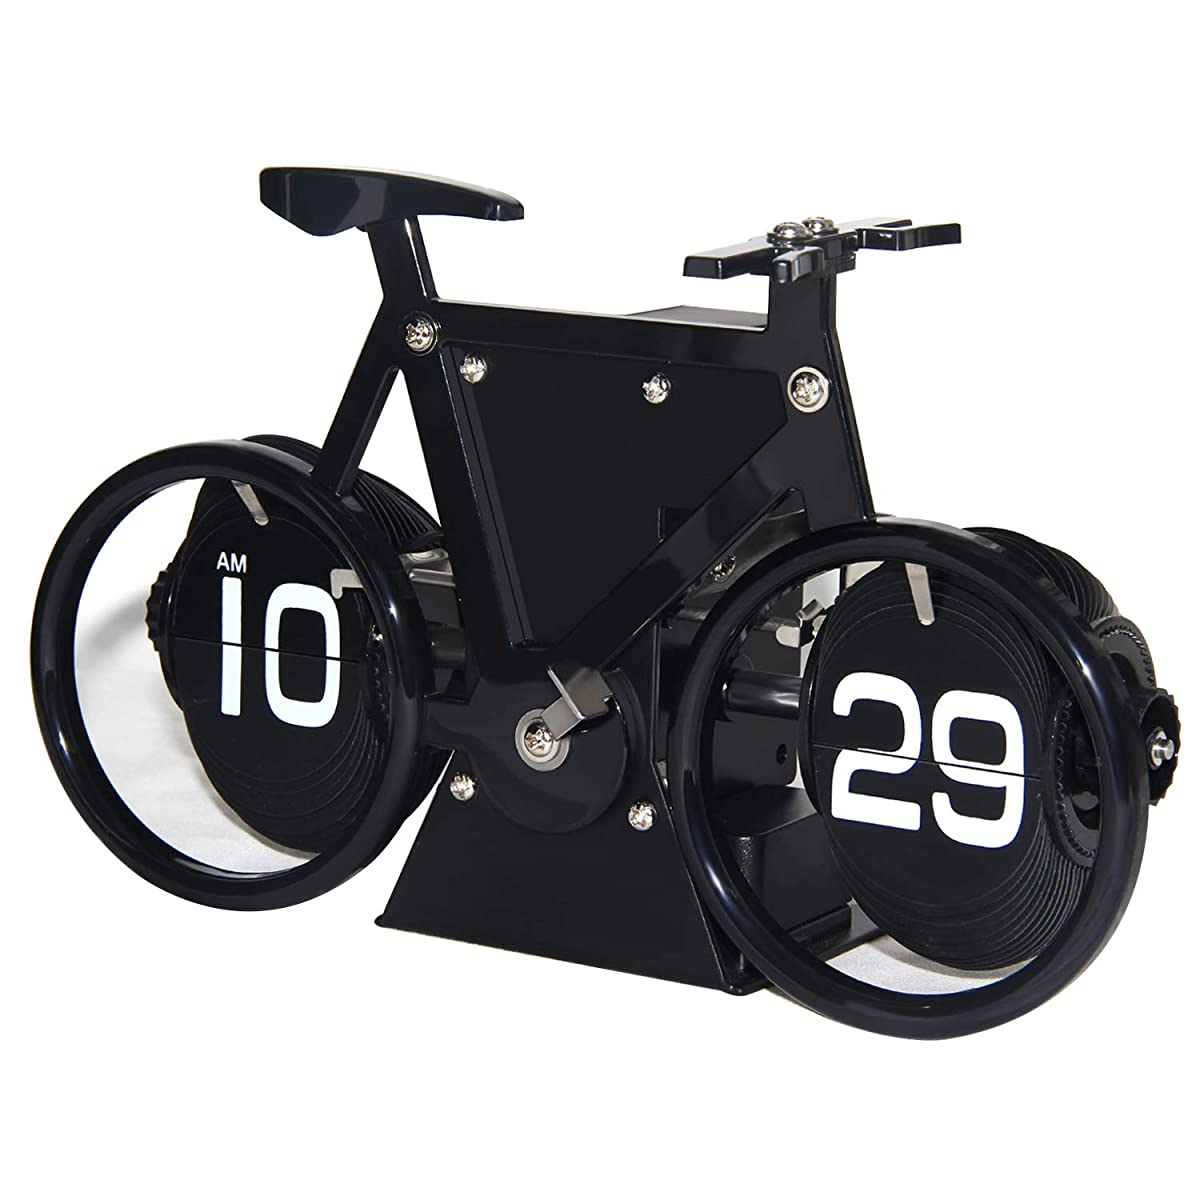 KABB Flip Clock, Retro Style Bicycle Shaped Flip Down Clock, Classical Mechanical Desk Clock, Digital Display with Battery Powered for Home & Office Décor (Black)